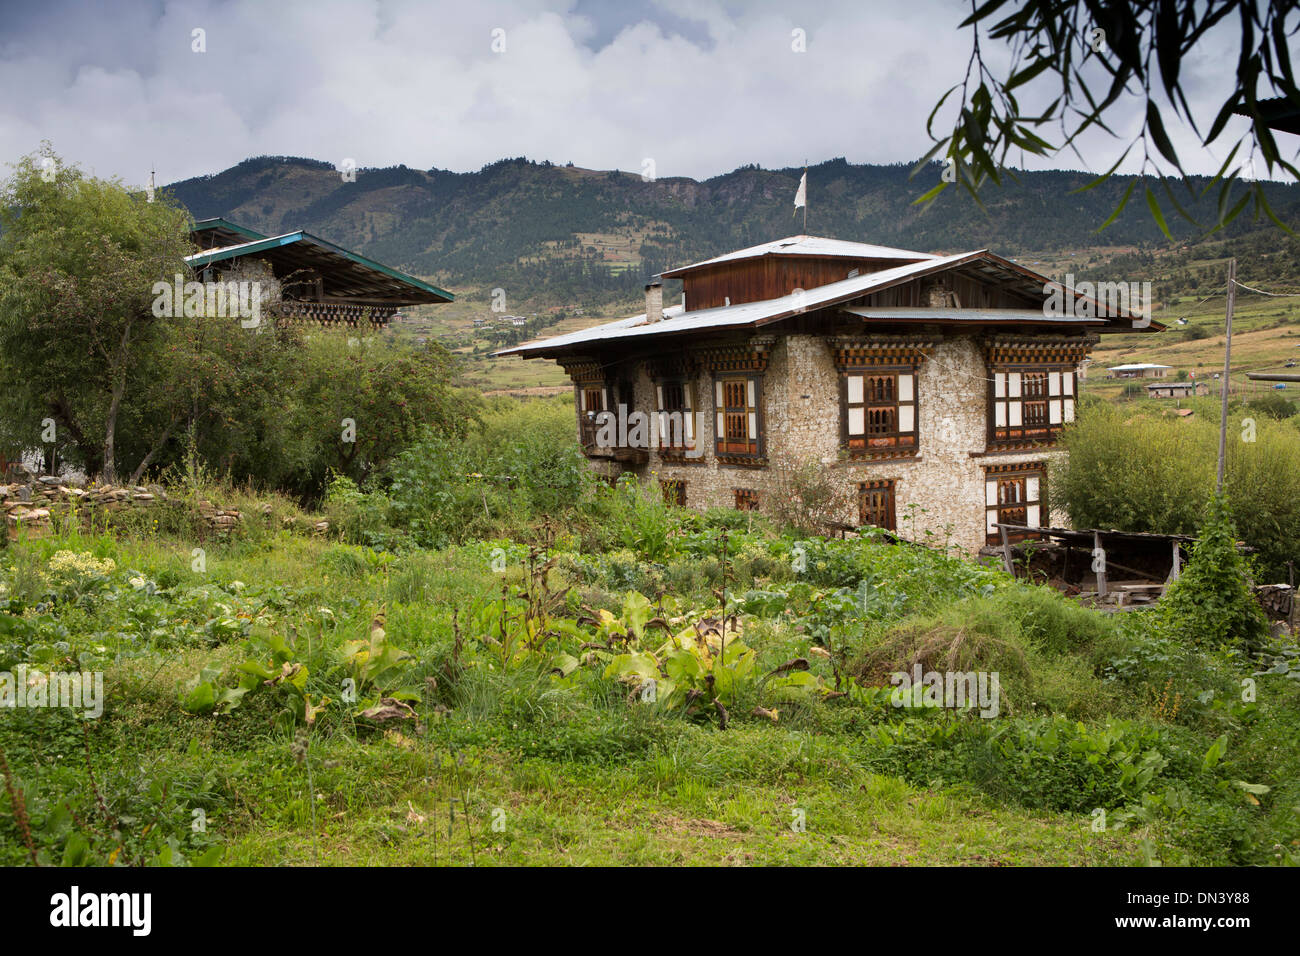 Eastern Bhutan Ura Village Traditionally Constructed Stone And Wood Framed House